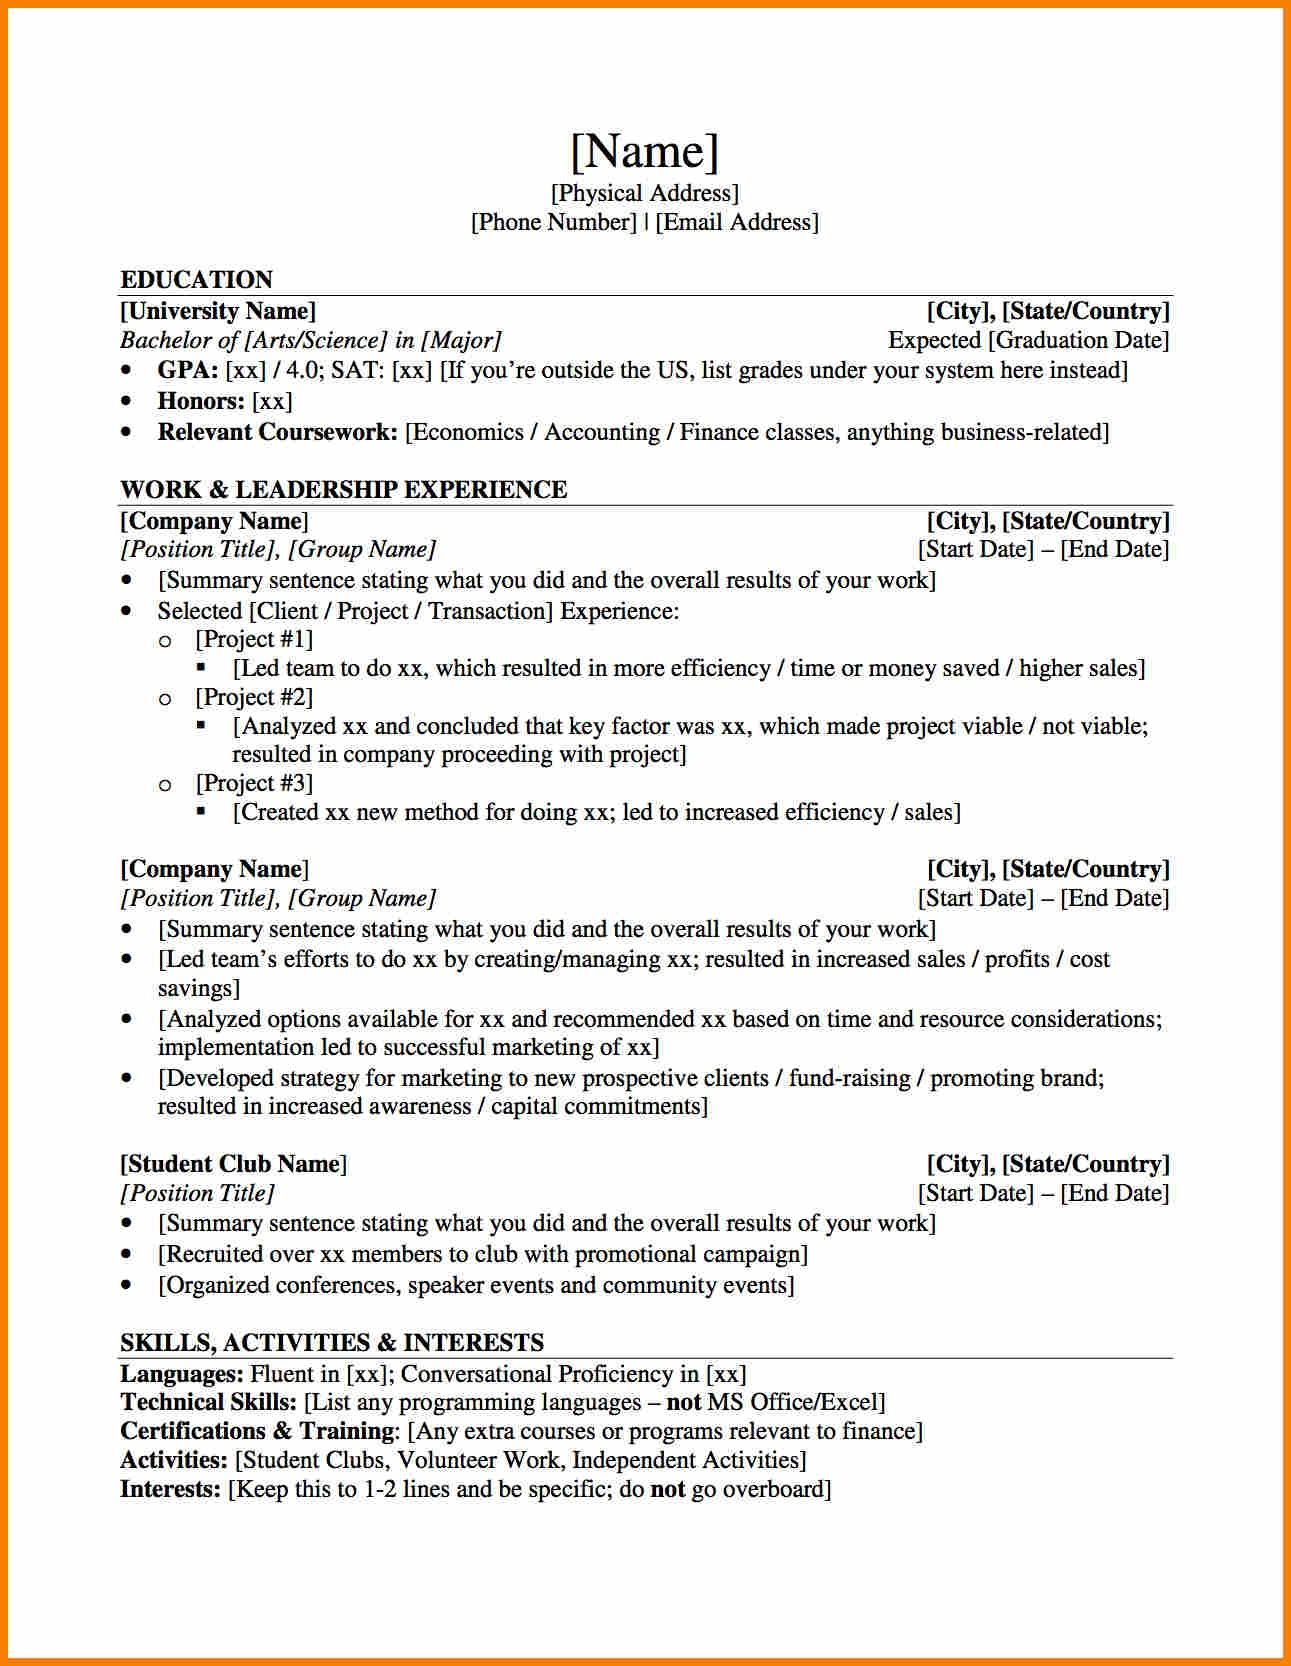 Disorders of puberty american family physician